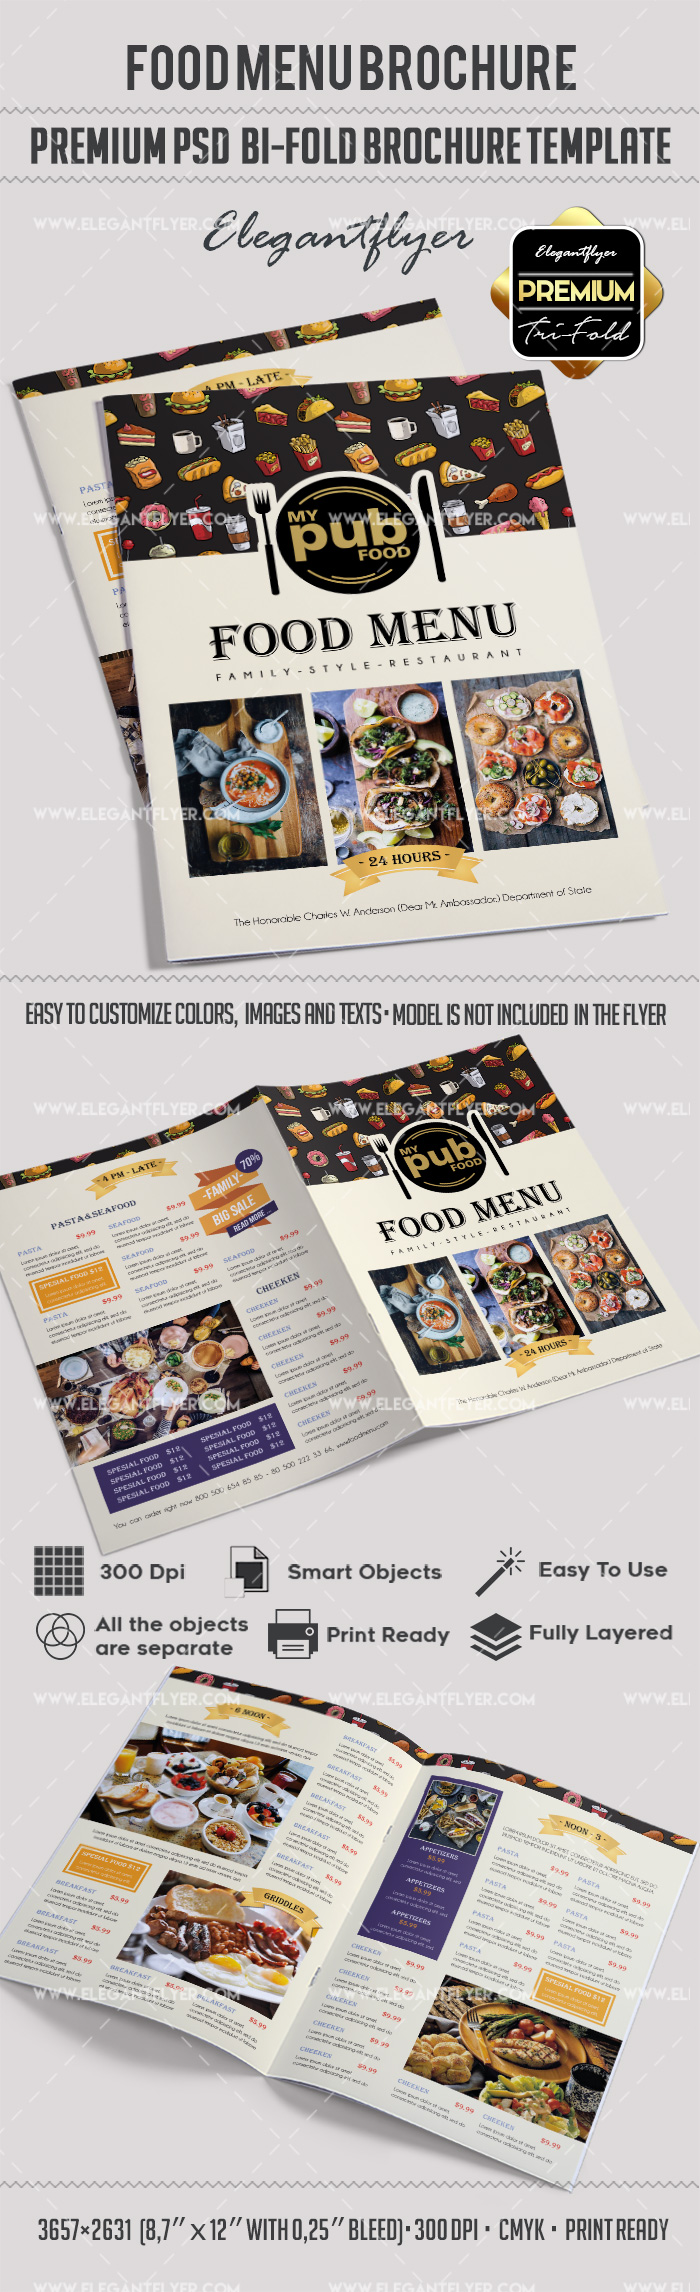 Food menu brochure template by elegantflyer for 2 fold brochure template psd